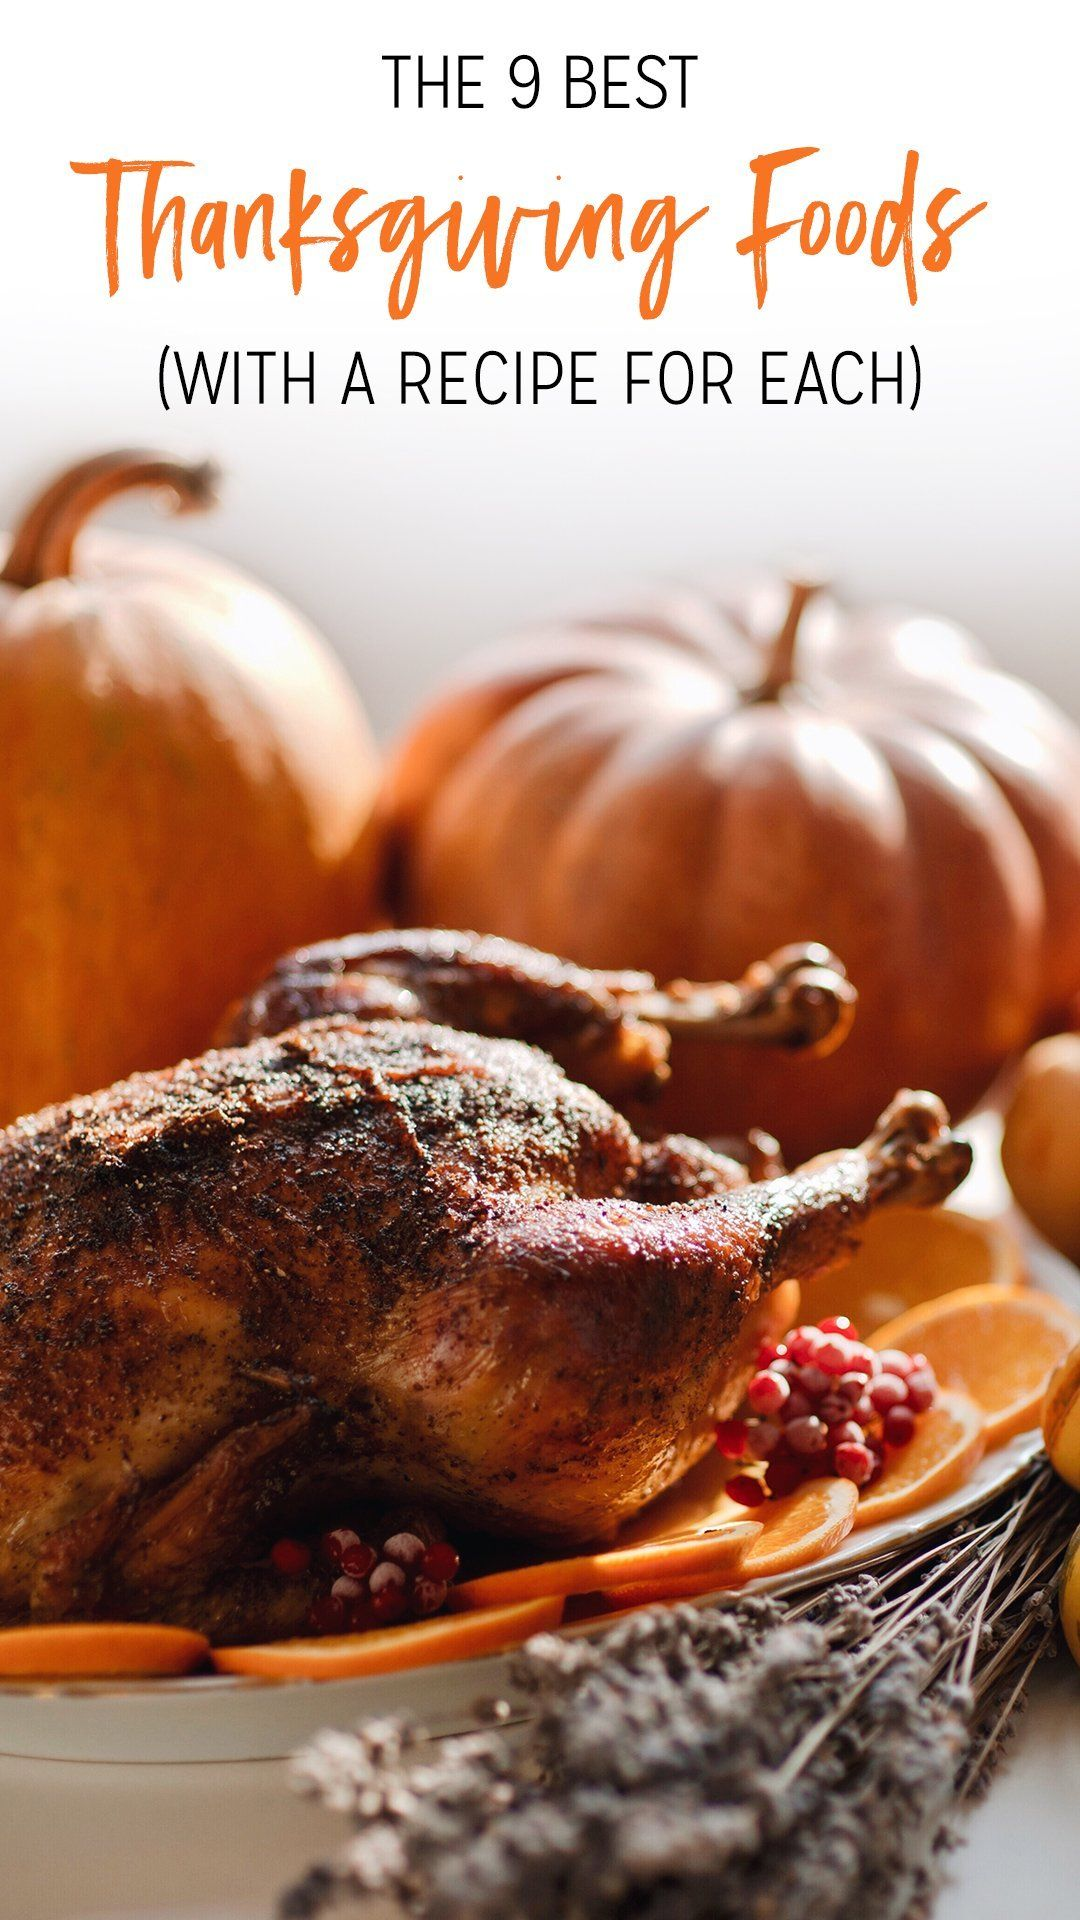 The 9 Best Thanksgiving Foods (With a Recipe for Each